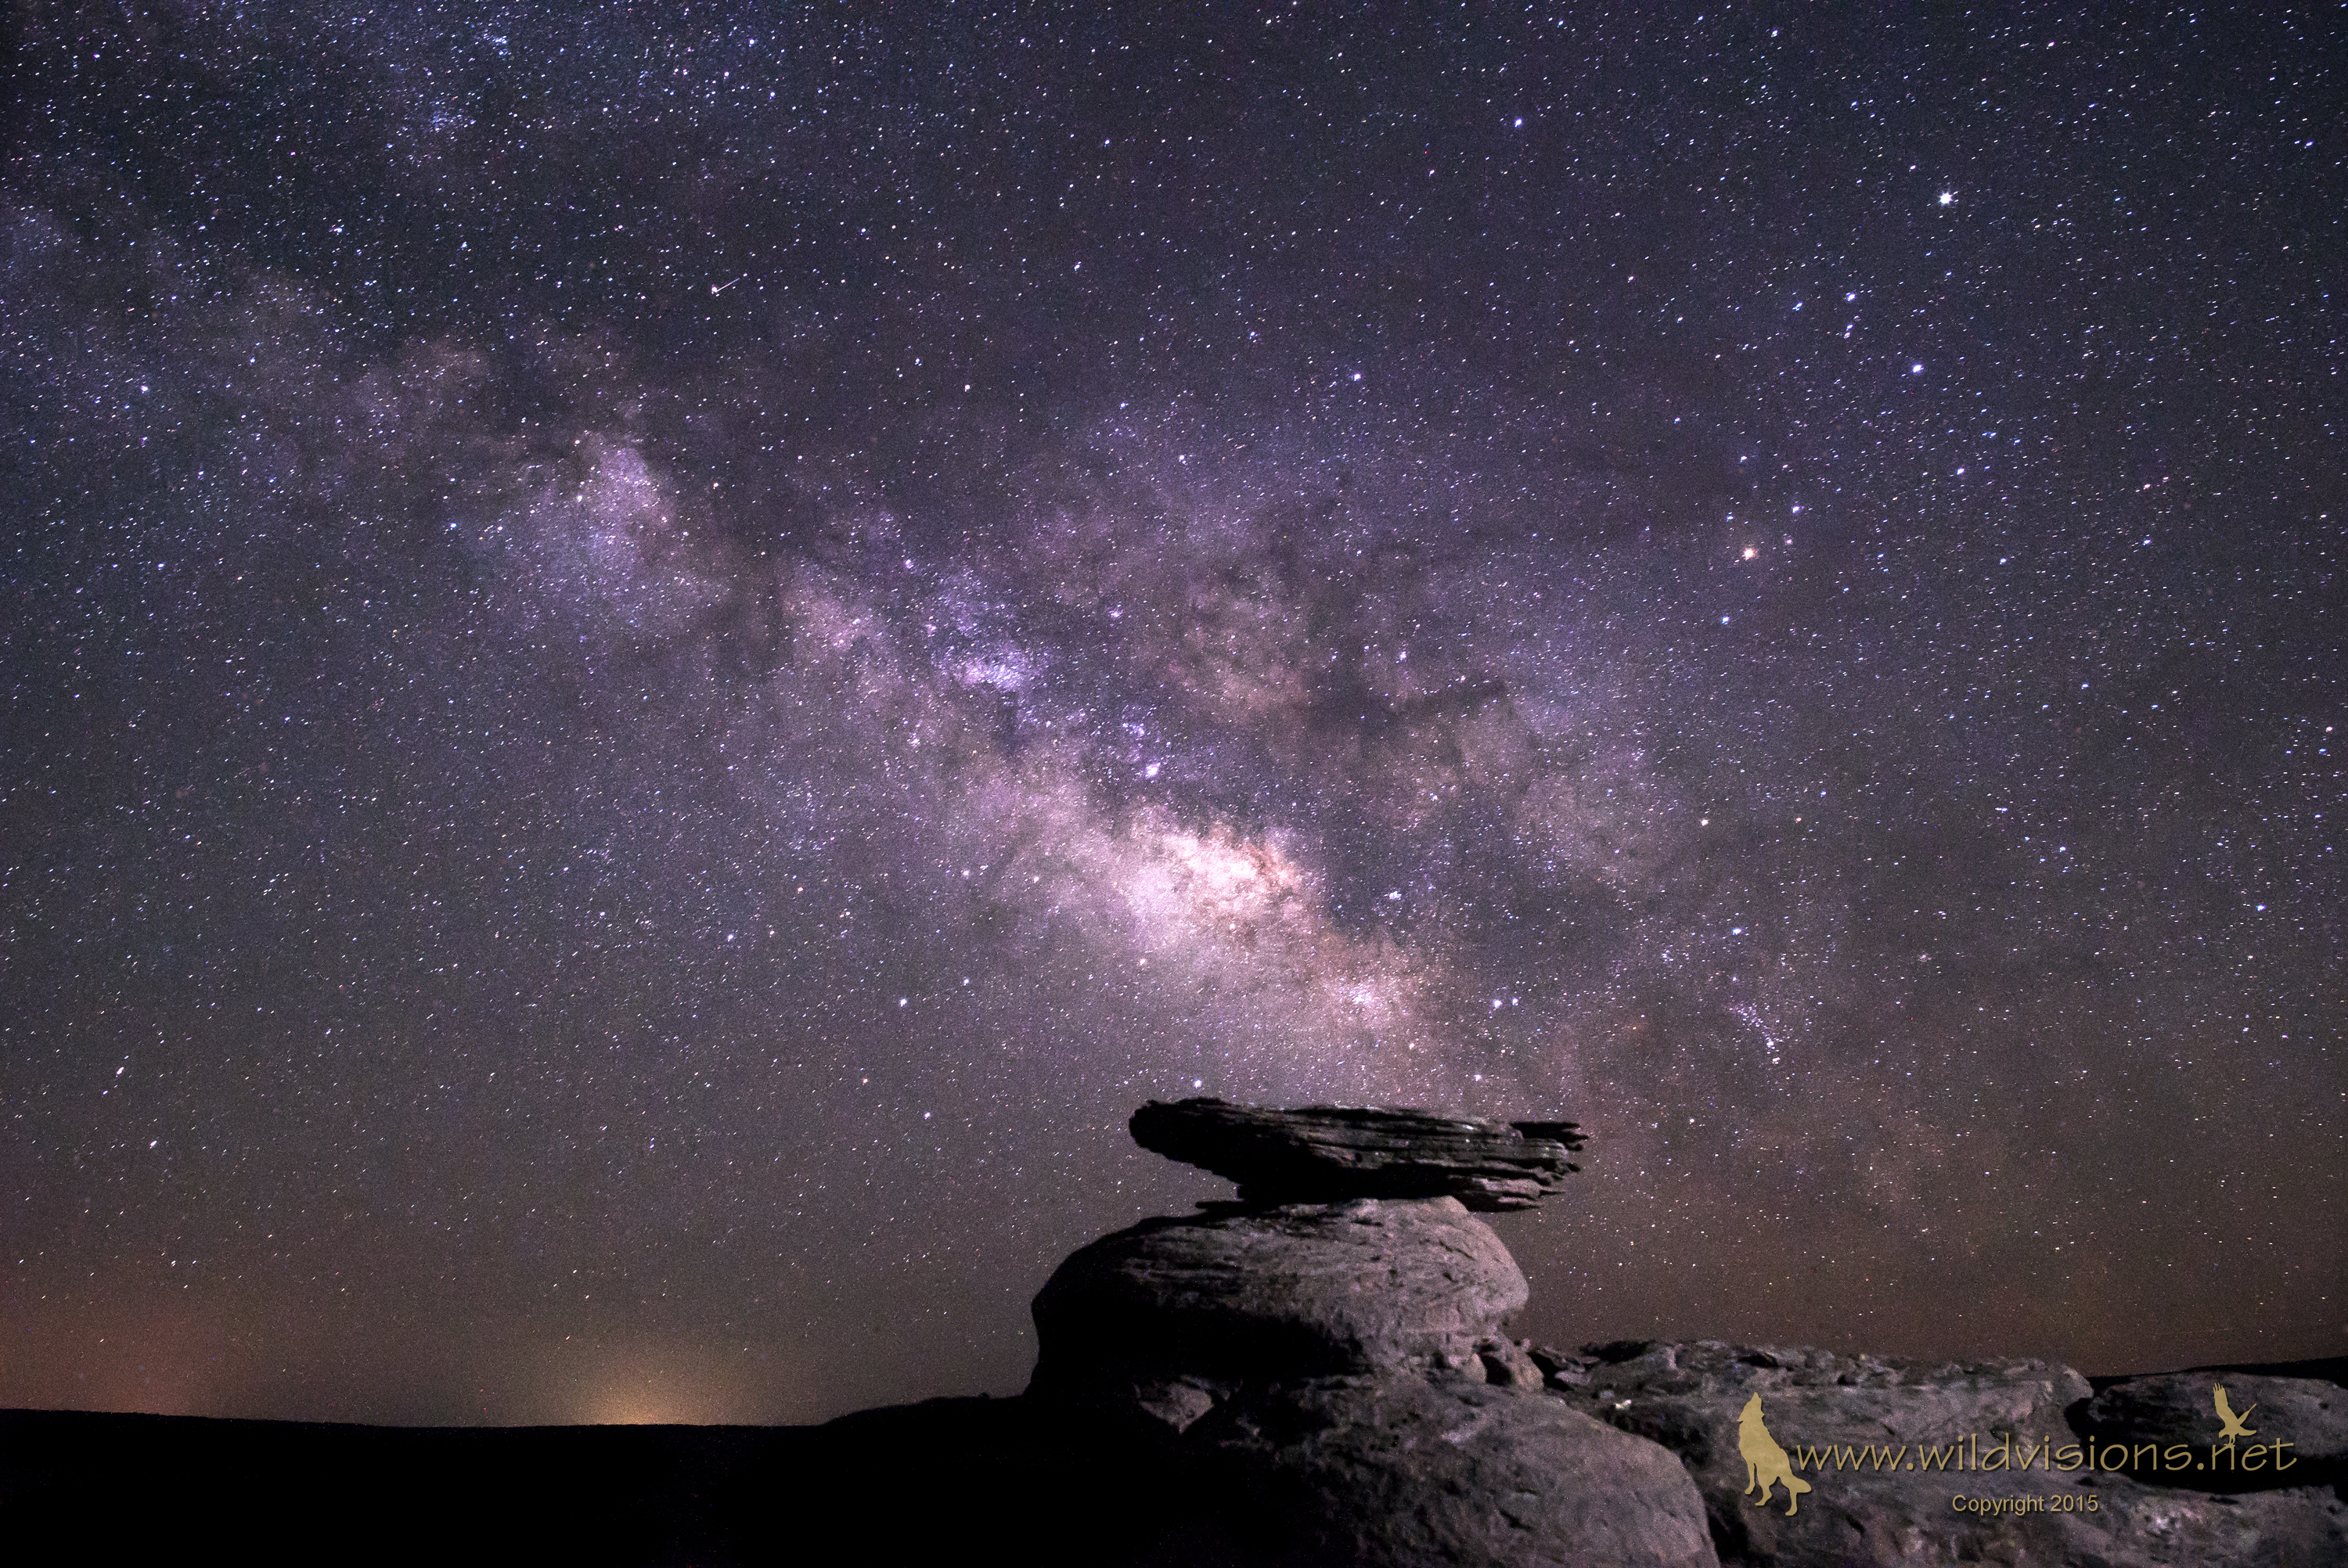 The Milky Way at night of Flying Saucer Rock in Snowflake Arizona